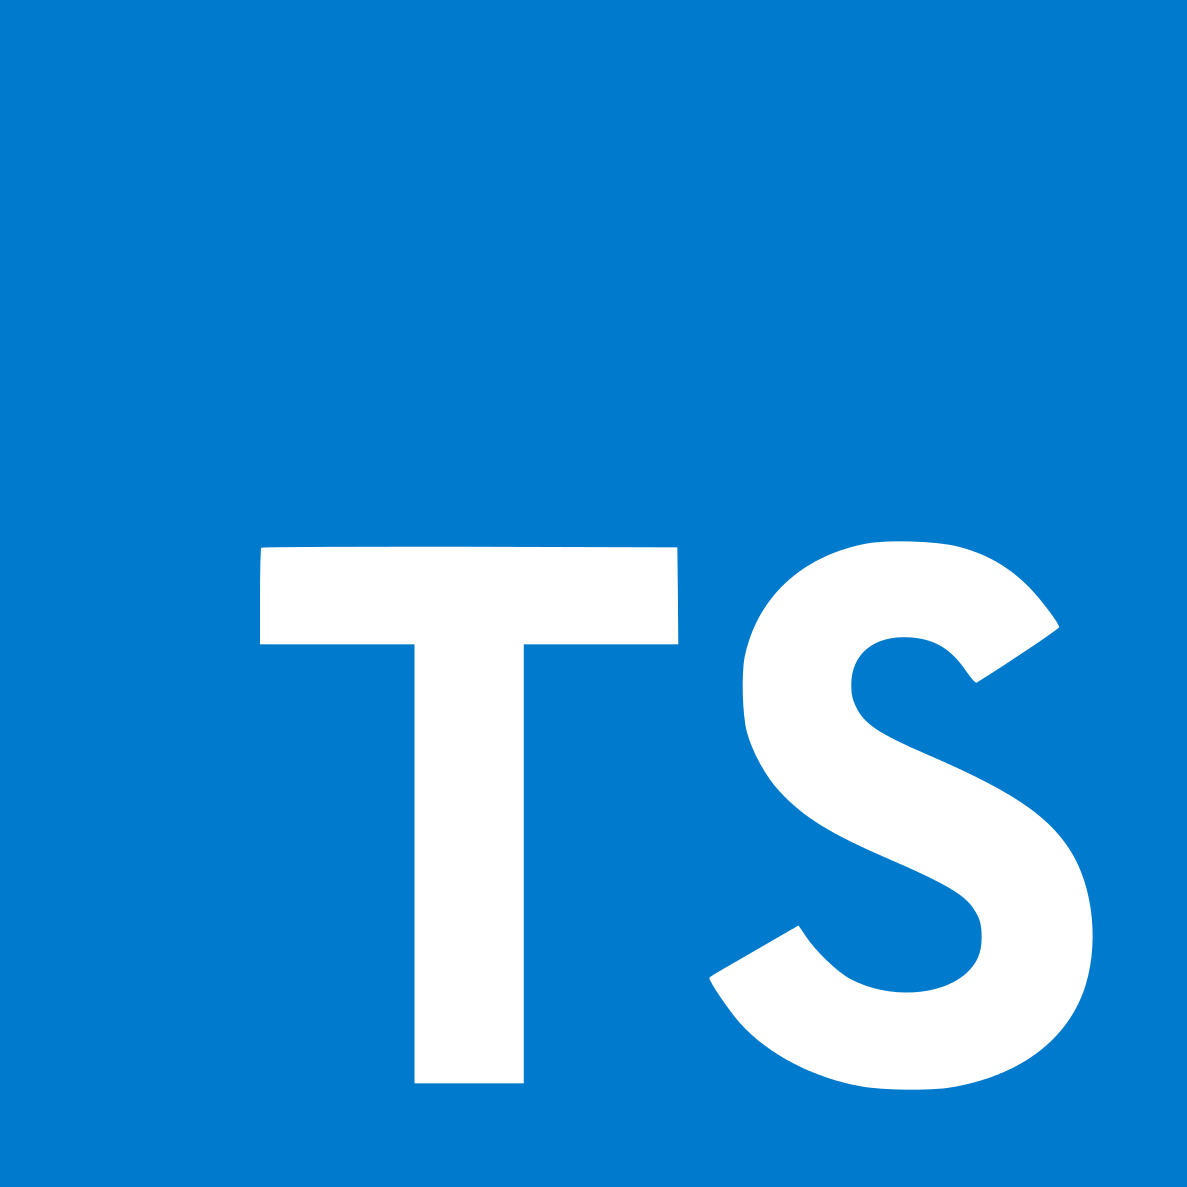 how to add elements to array in typescript